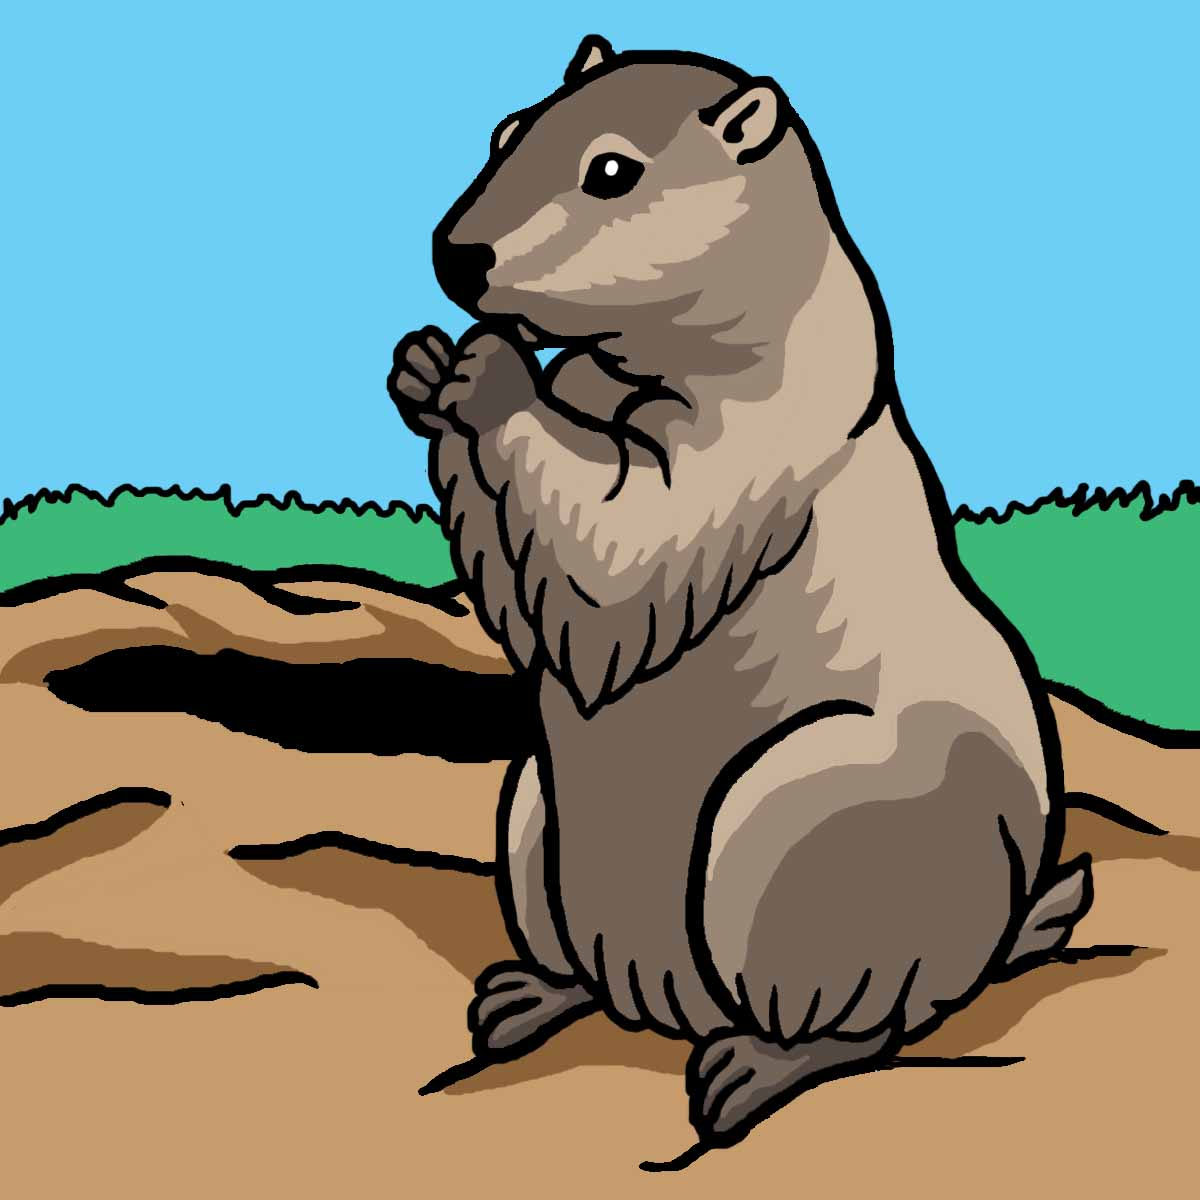 Storytime This Week  Celebrating Groundhog Day   Harris County Public